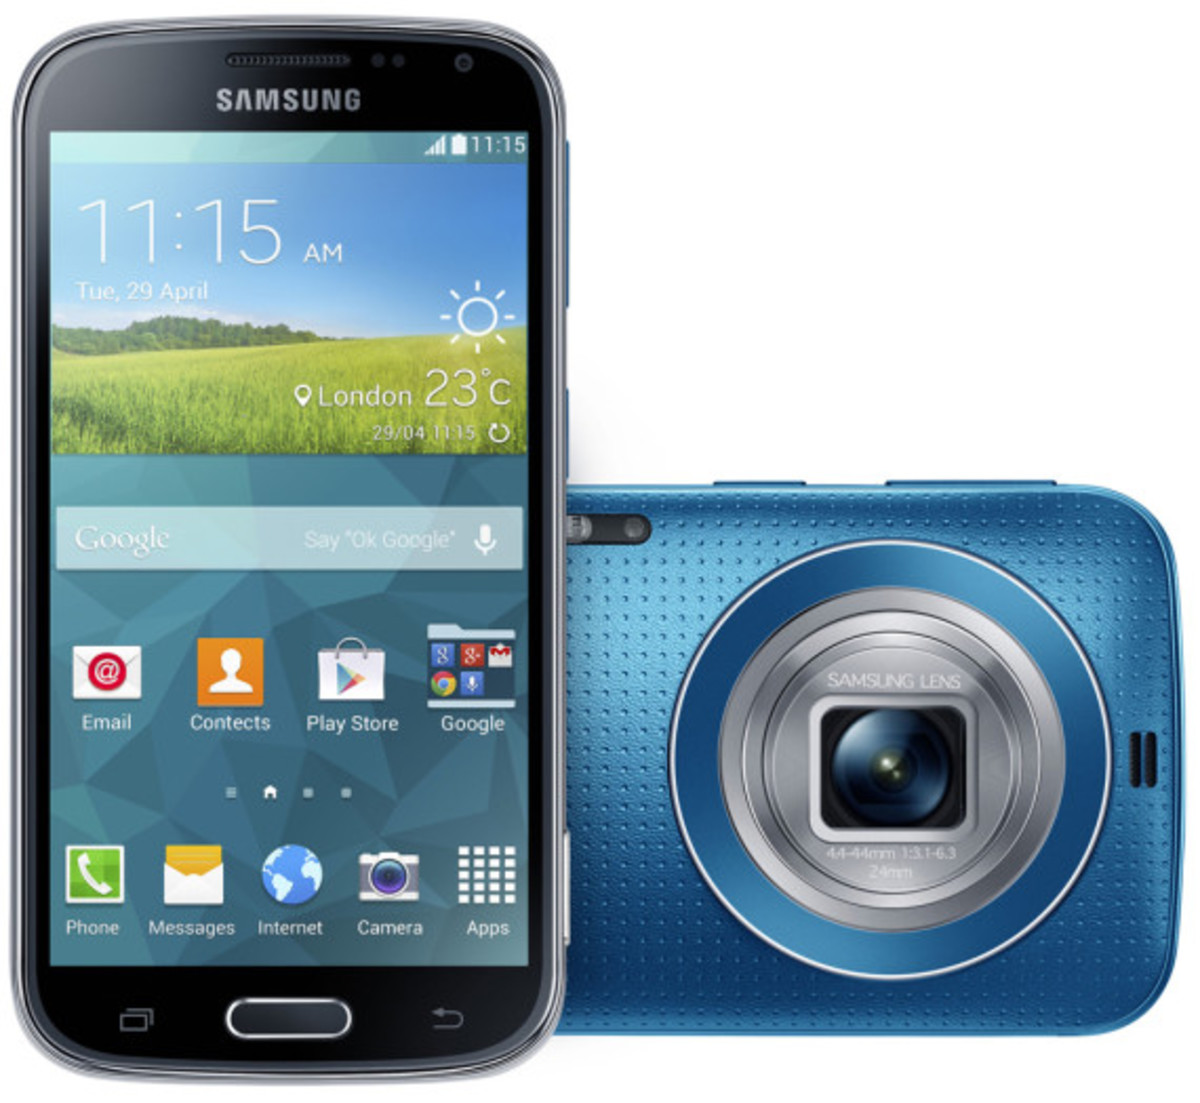 samsung-galaxy-k-zoom-new-camera-specialized-smartphone-03